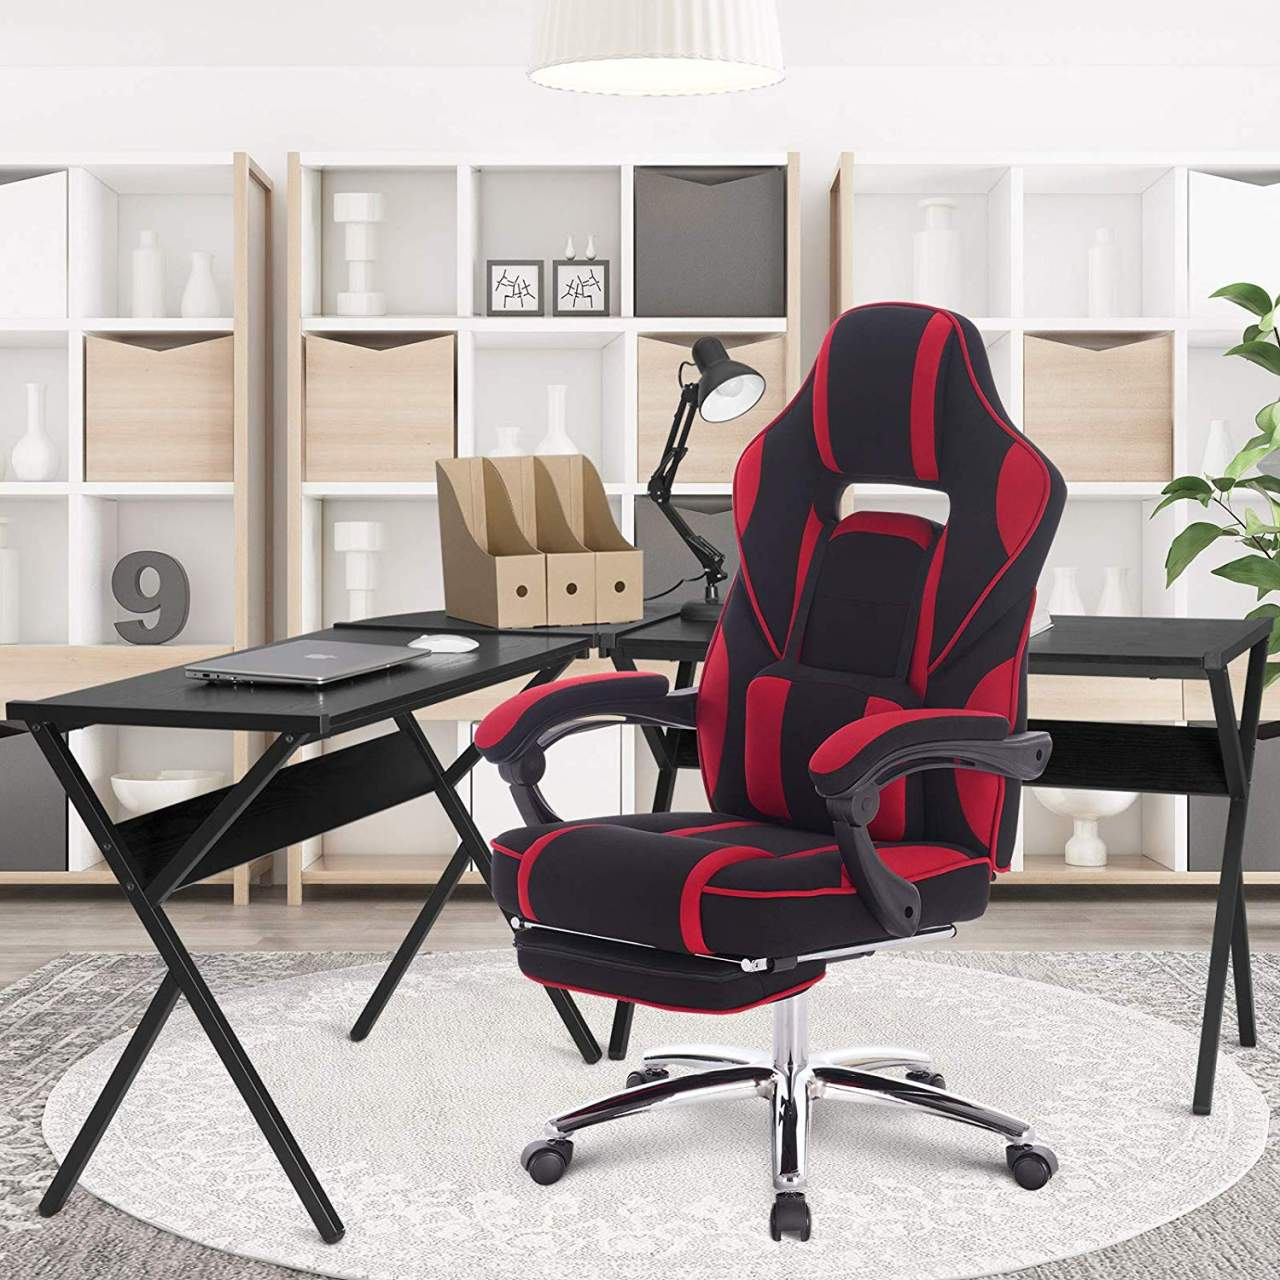 - Racing Chair Swivel Computer Desk Chair Fabric Seat With 170°Tilt